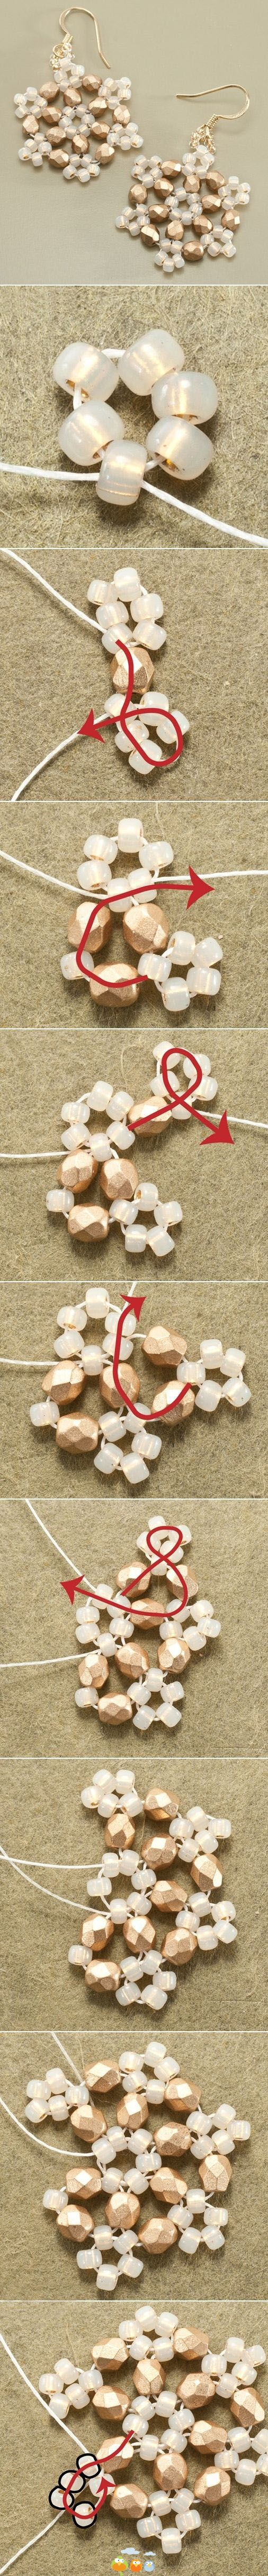 Quick & easy snowflake earrings (can also use as decorations) - not in English but really clear pics